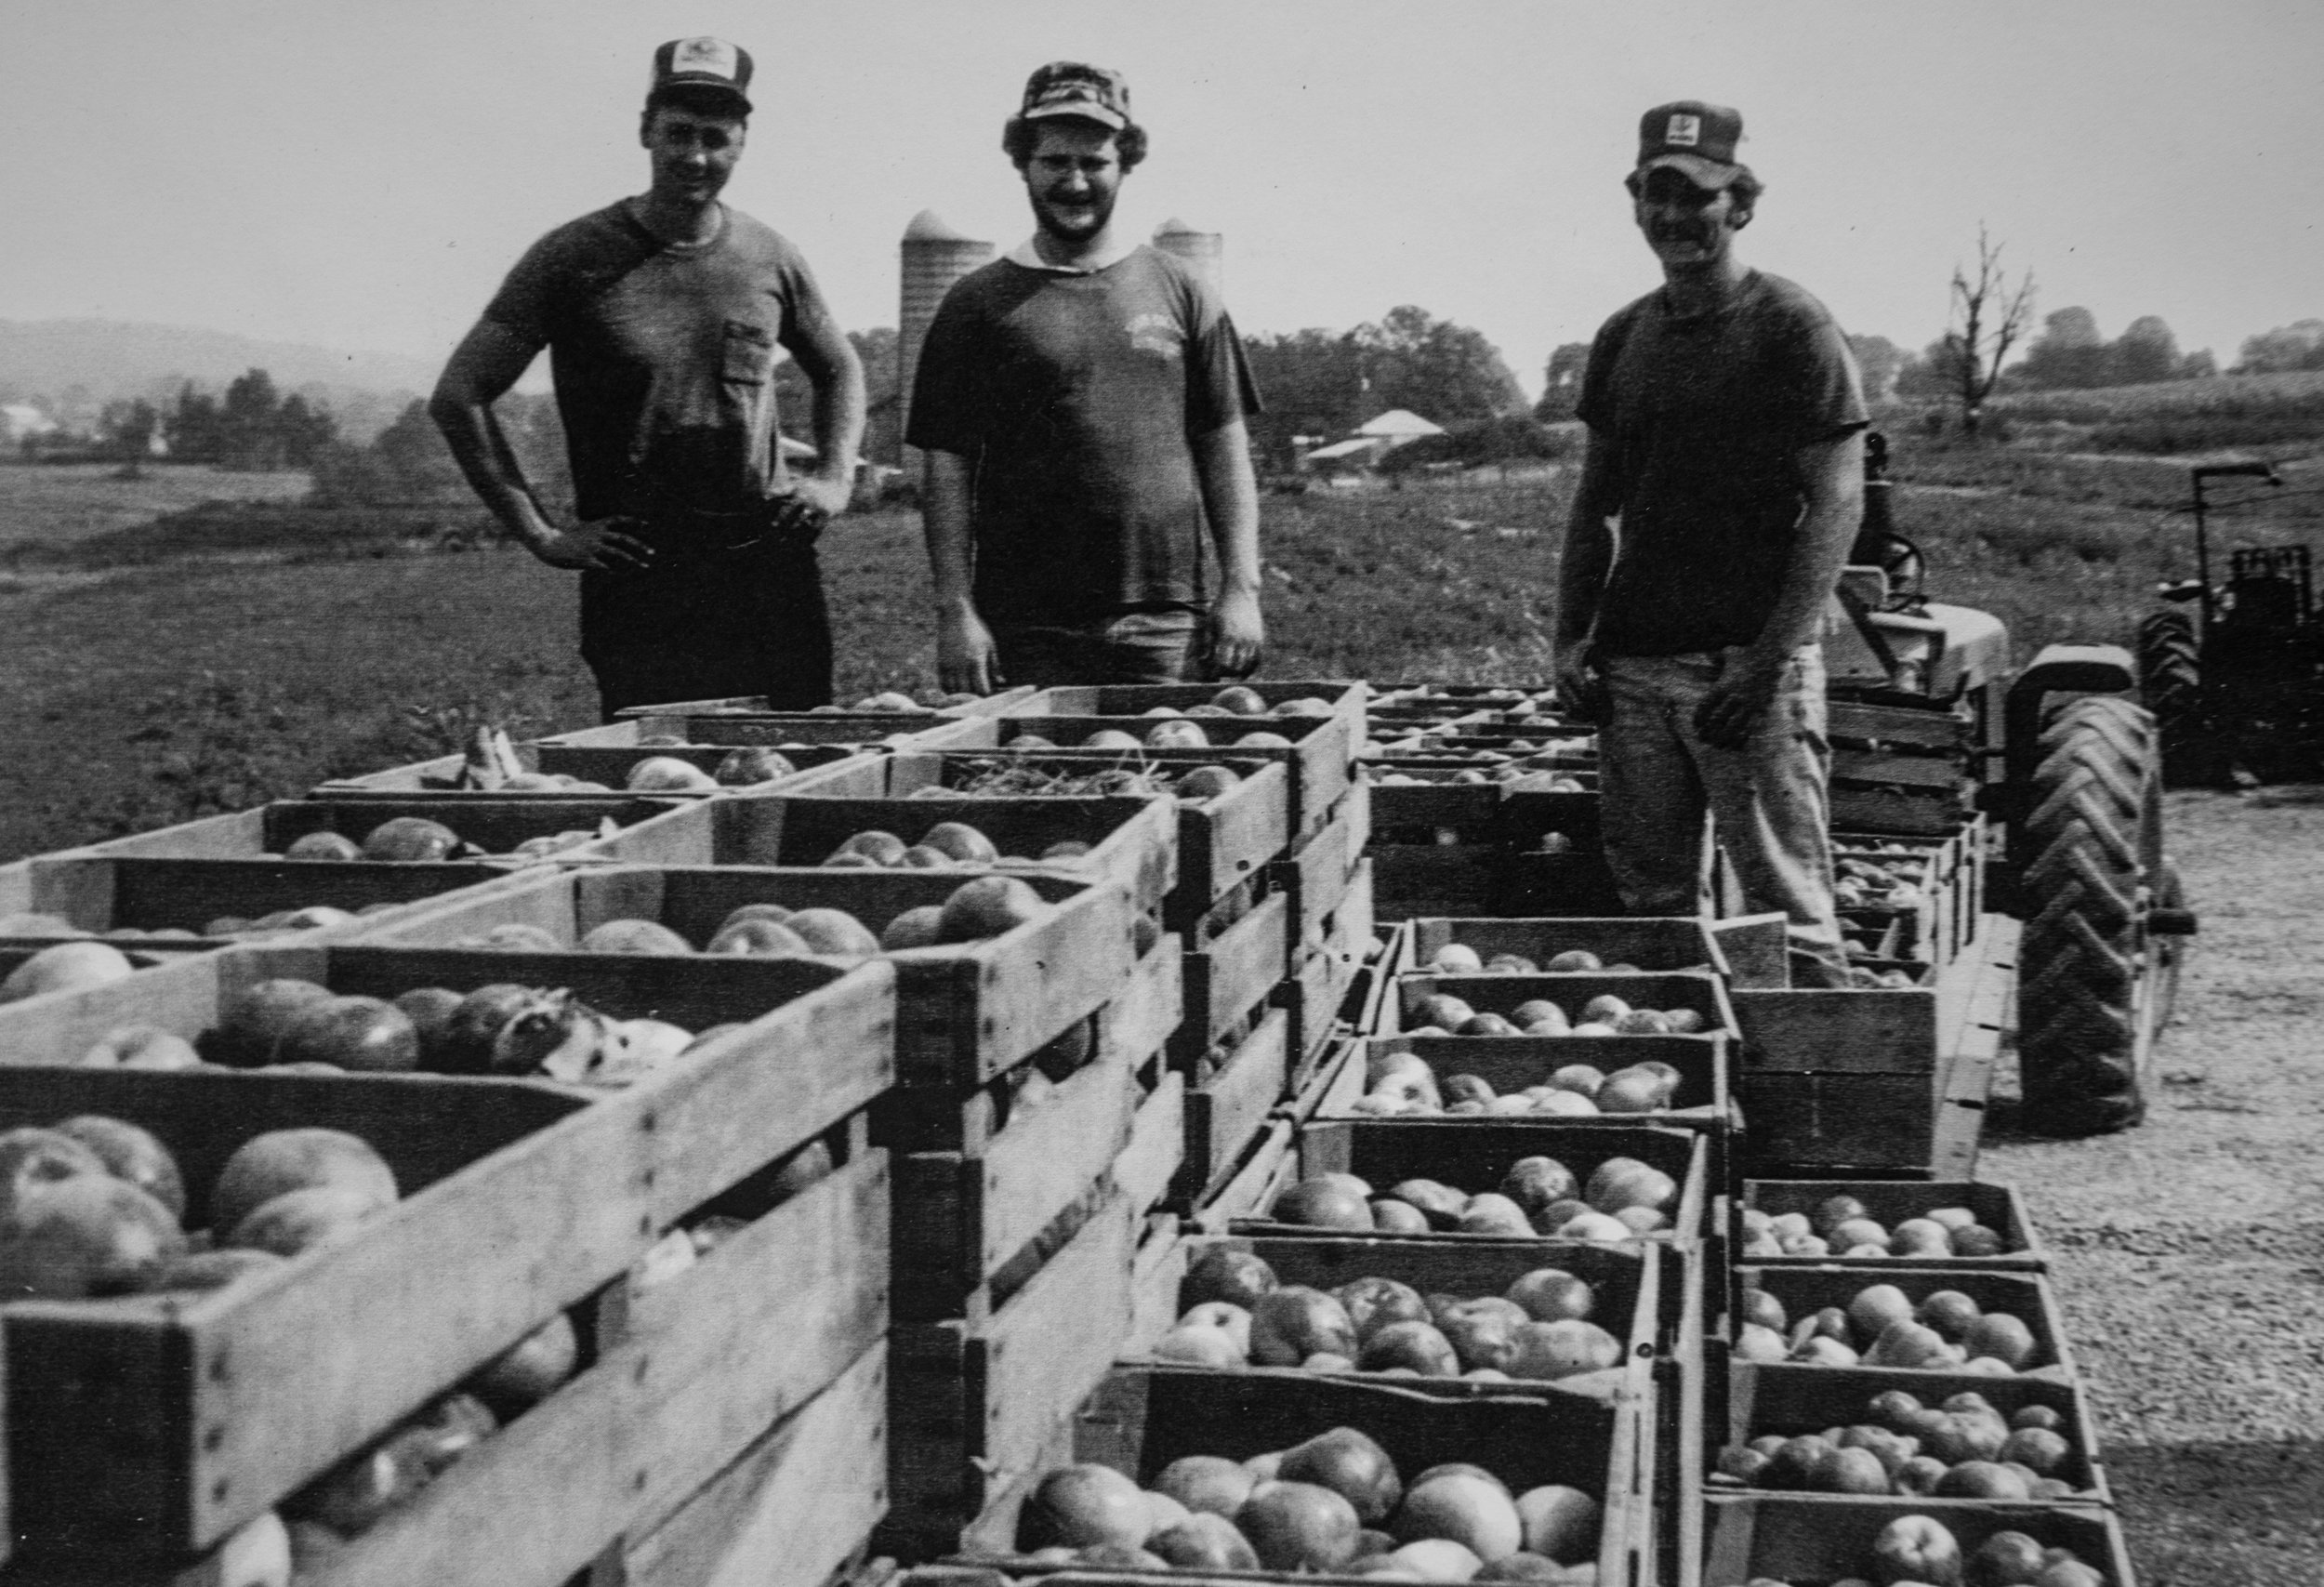 Brooks Way and his brother in law Rick DeArmitt bring in apples they picked in 1982.